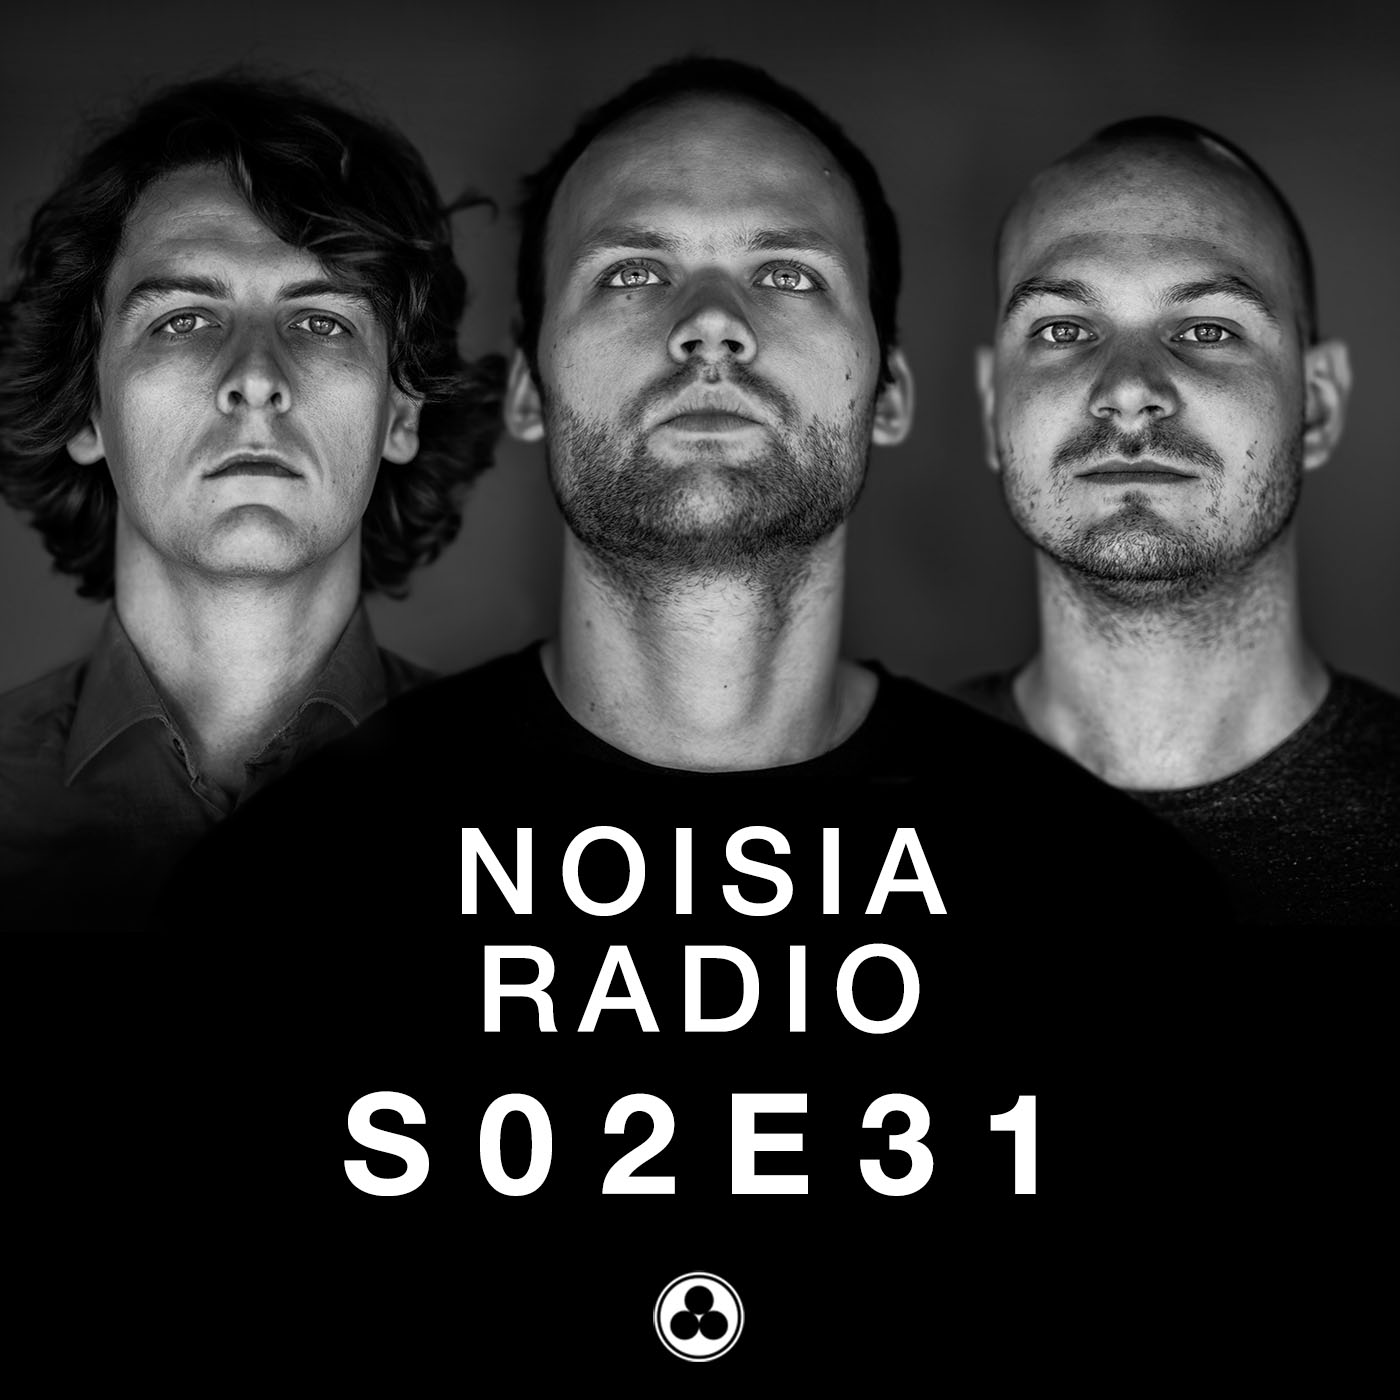 Noisia Radio S02E31